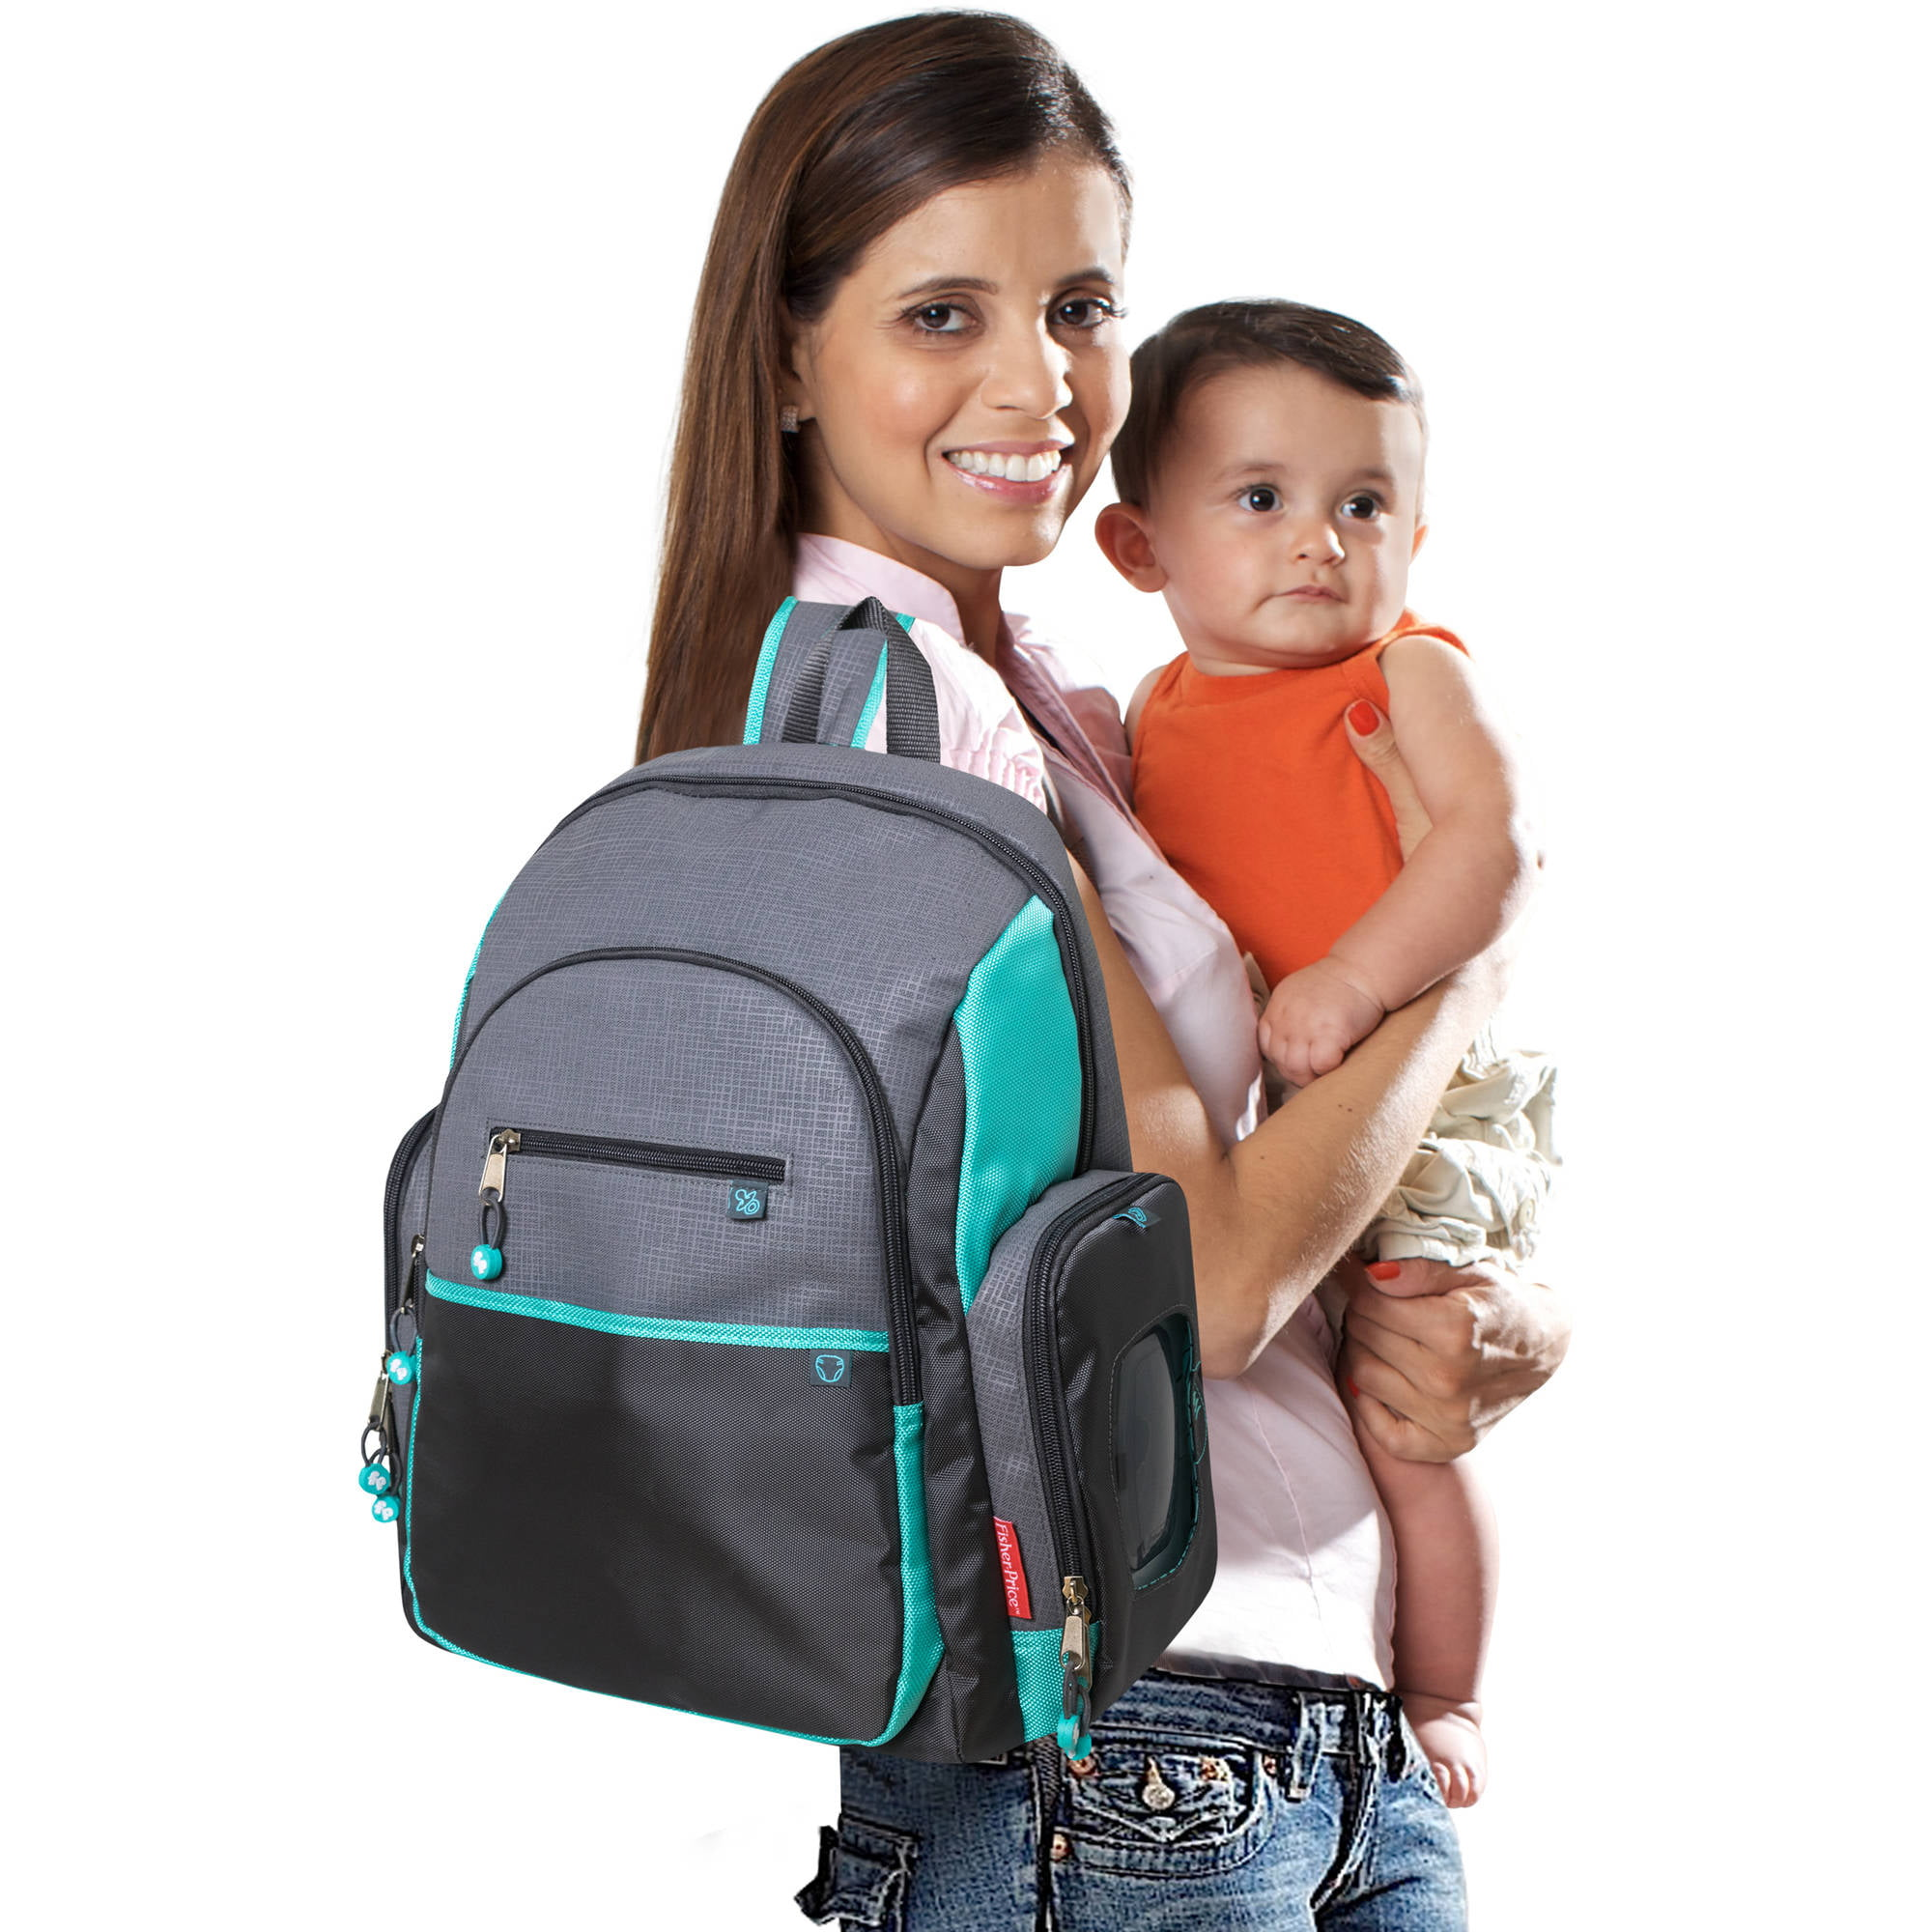 Fisher Price Deluxe Backpack Diaper Bag Gray and Teal Walmart